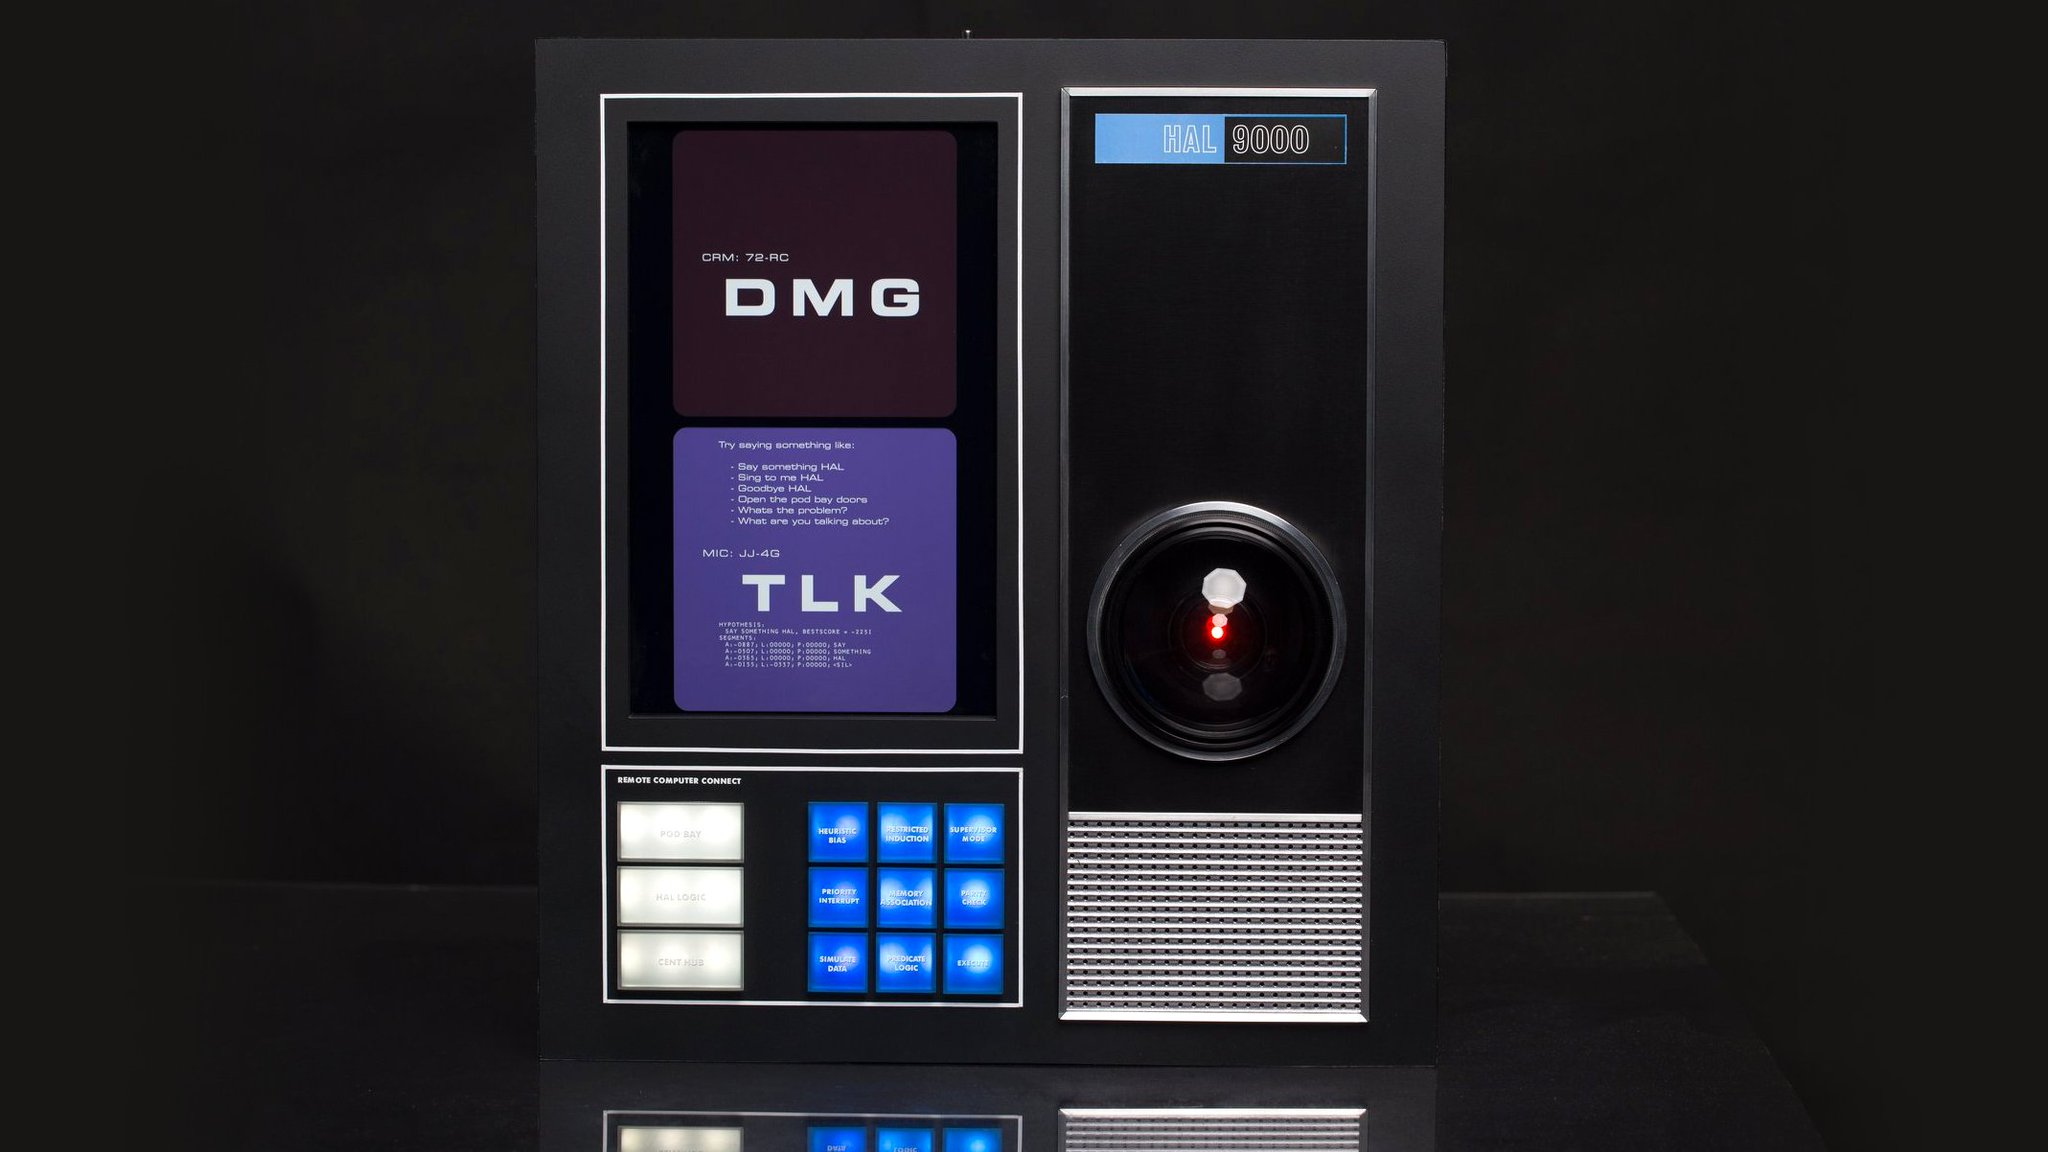 You can soon own a HAL 9000 replica that uses Amazon Alexa to control your home, Dave https://t.co/bdveqG1dPG https://t.co/CmJ2CxtRam